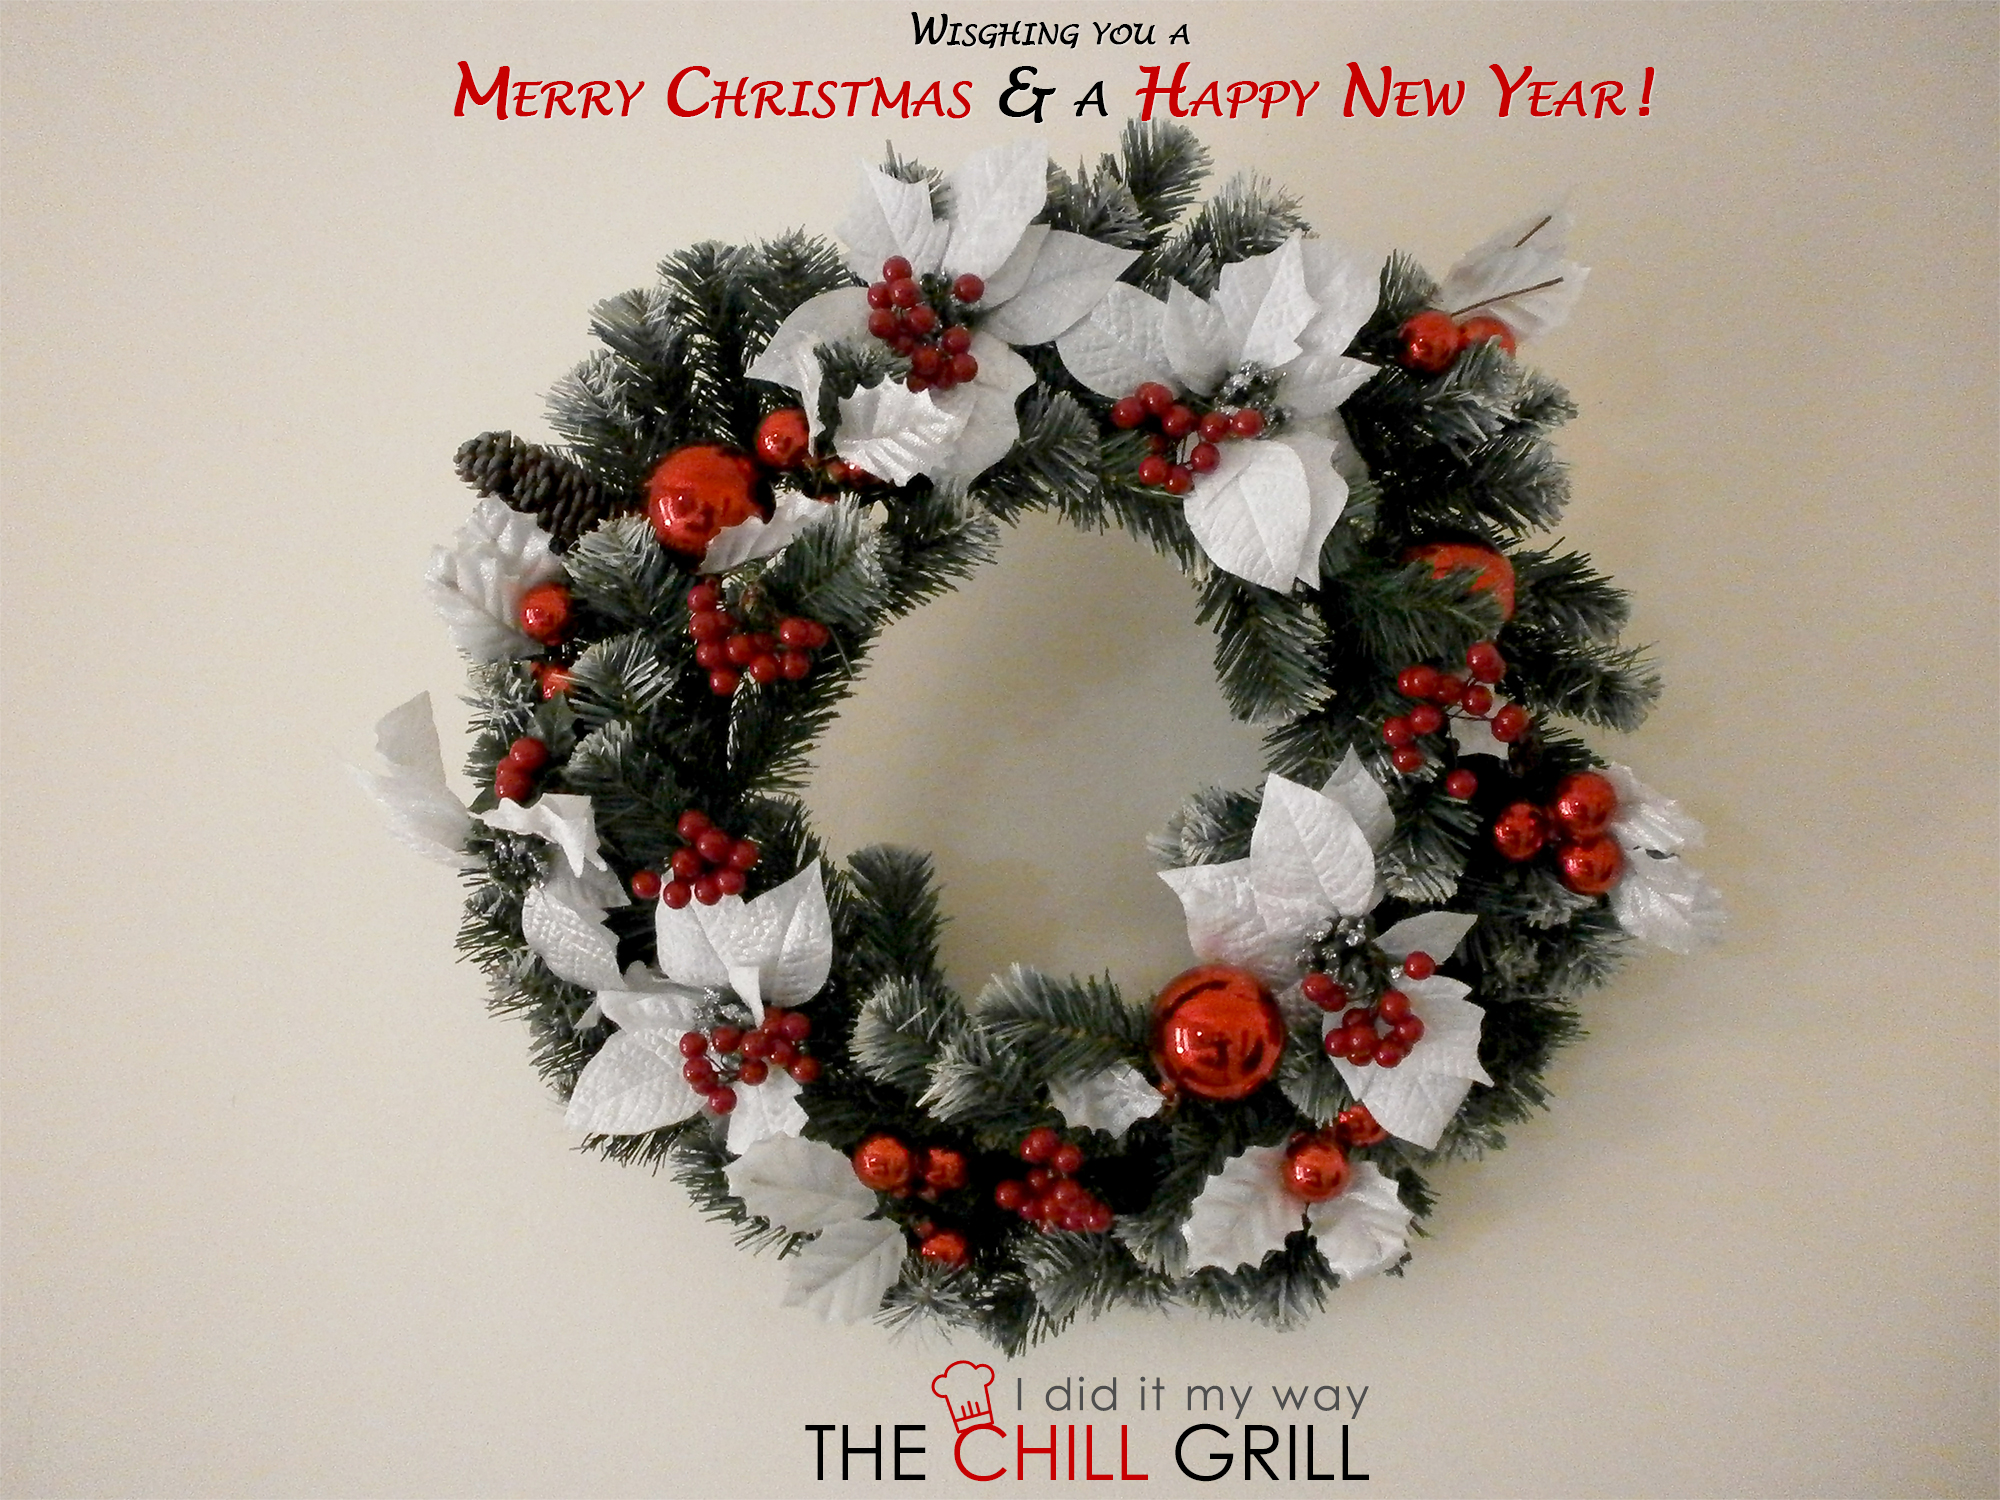 Greetings from The Chill Grill